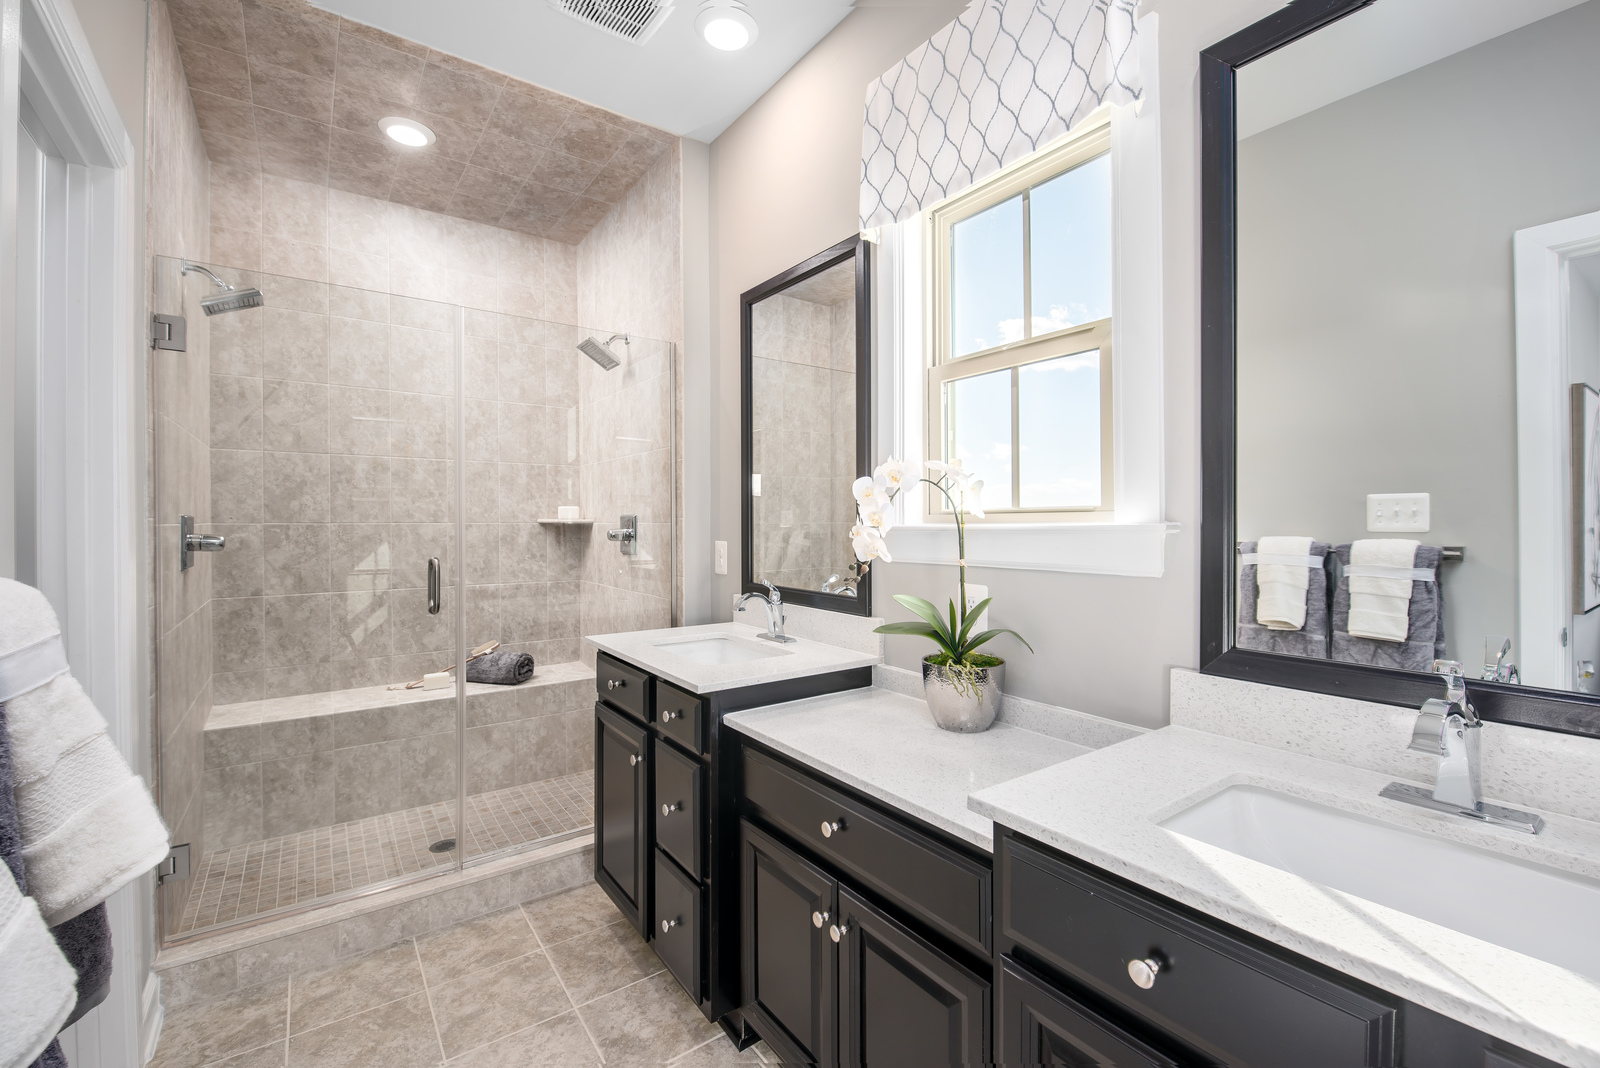 With dual vanities and private water closet, everyone will have their own lavish space.